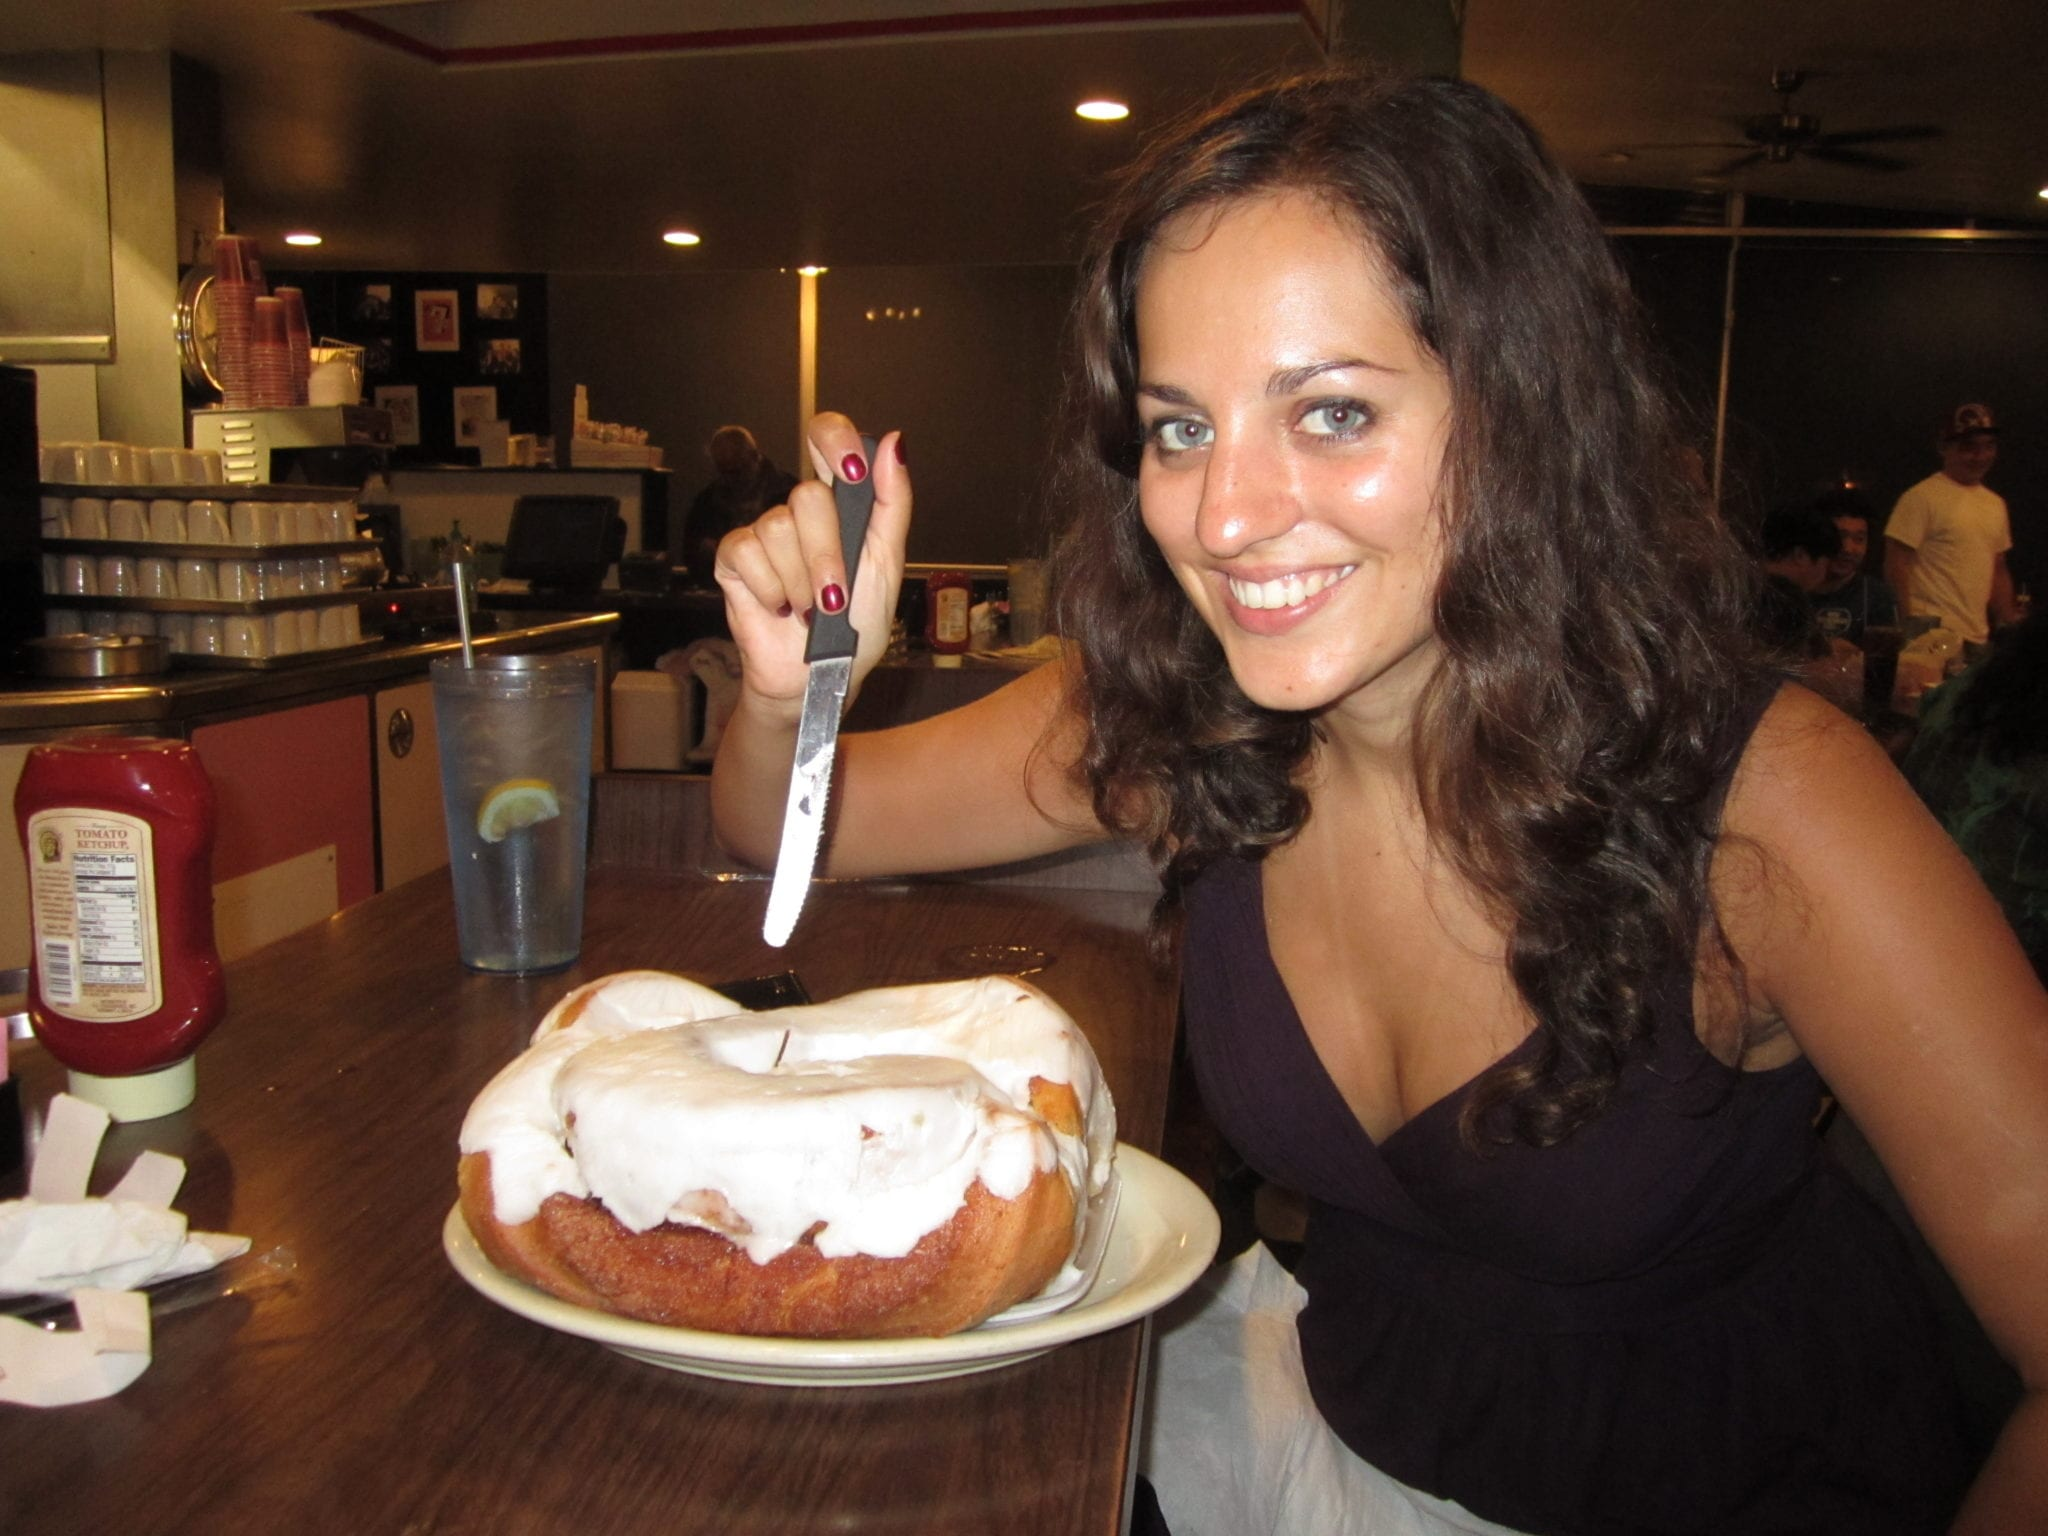 Kate and the Cinnamon Roll